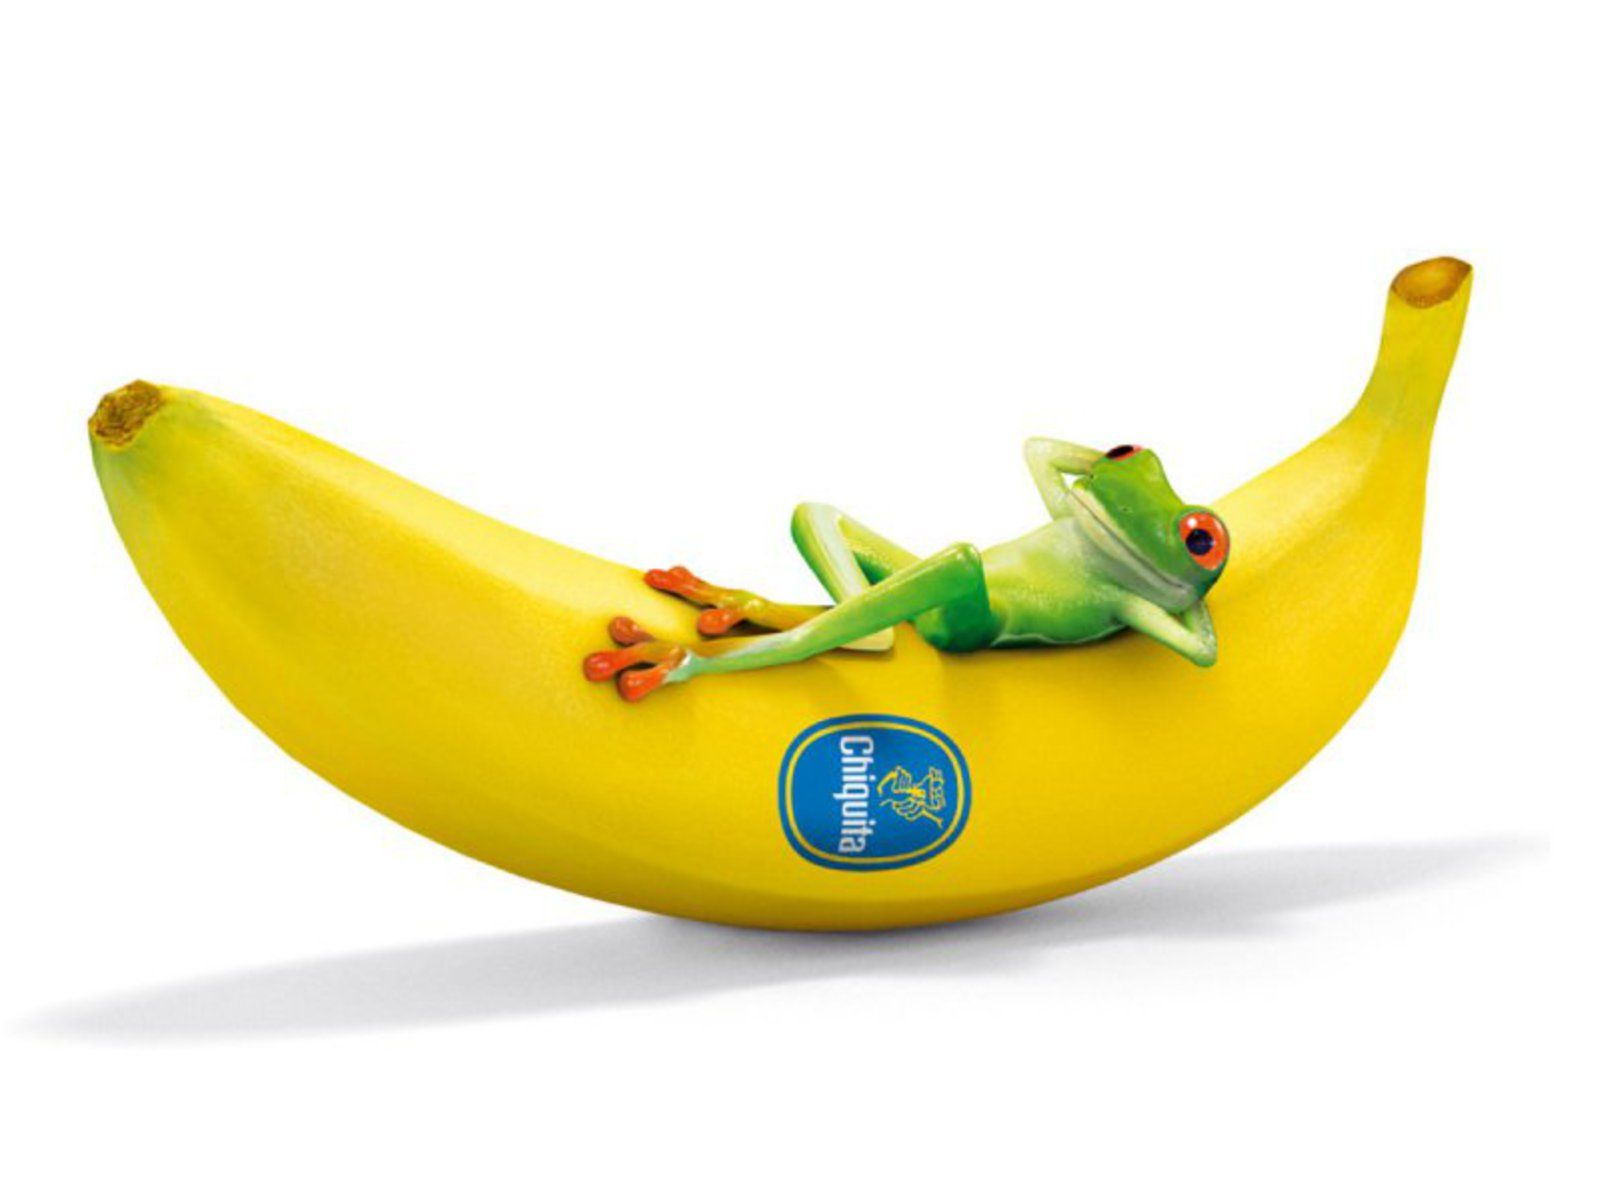 banana funny fruit hd wallpaper: when you put up your eyes the